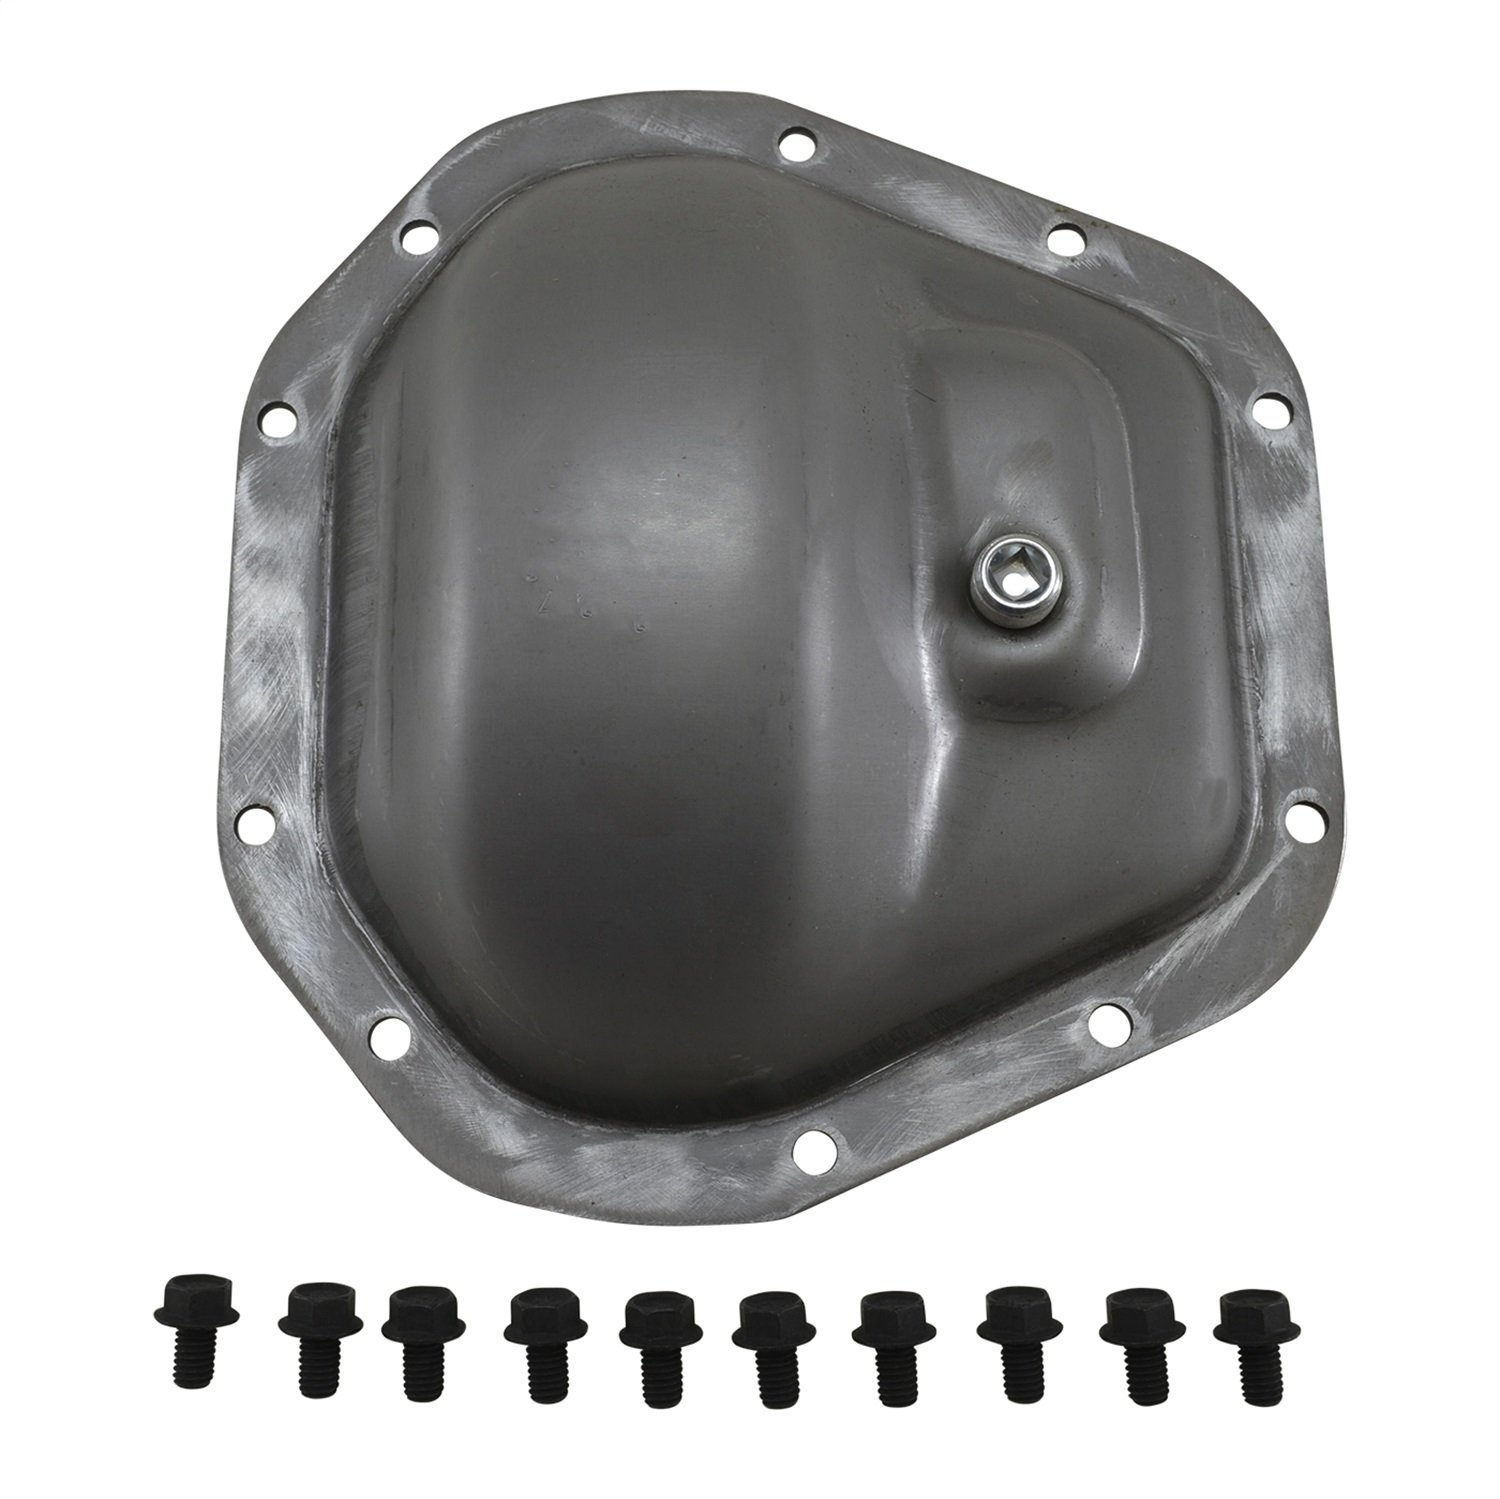 Yukon Gear & Axle (YP C5-D60-REV) Steel Cover for Dana 60 Reverse Rotation Differential by Yukon Gear (Image #1)